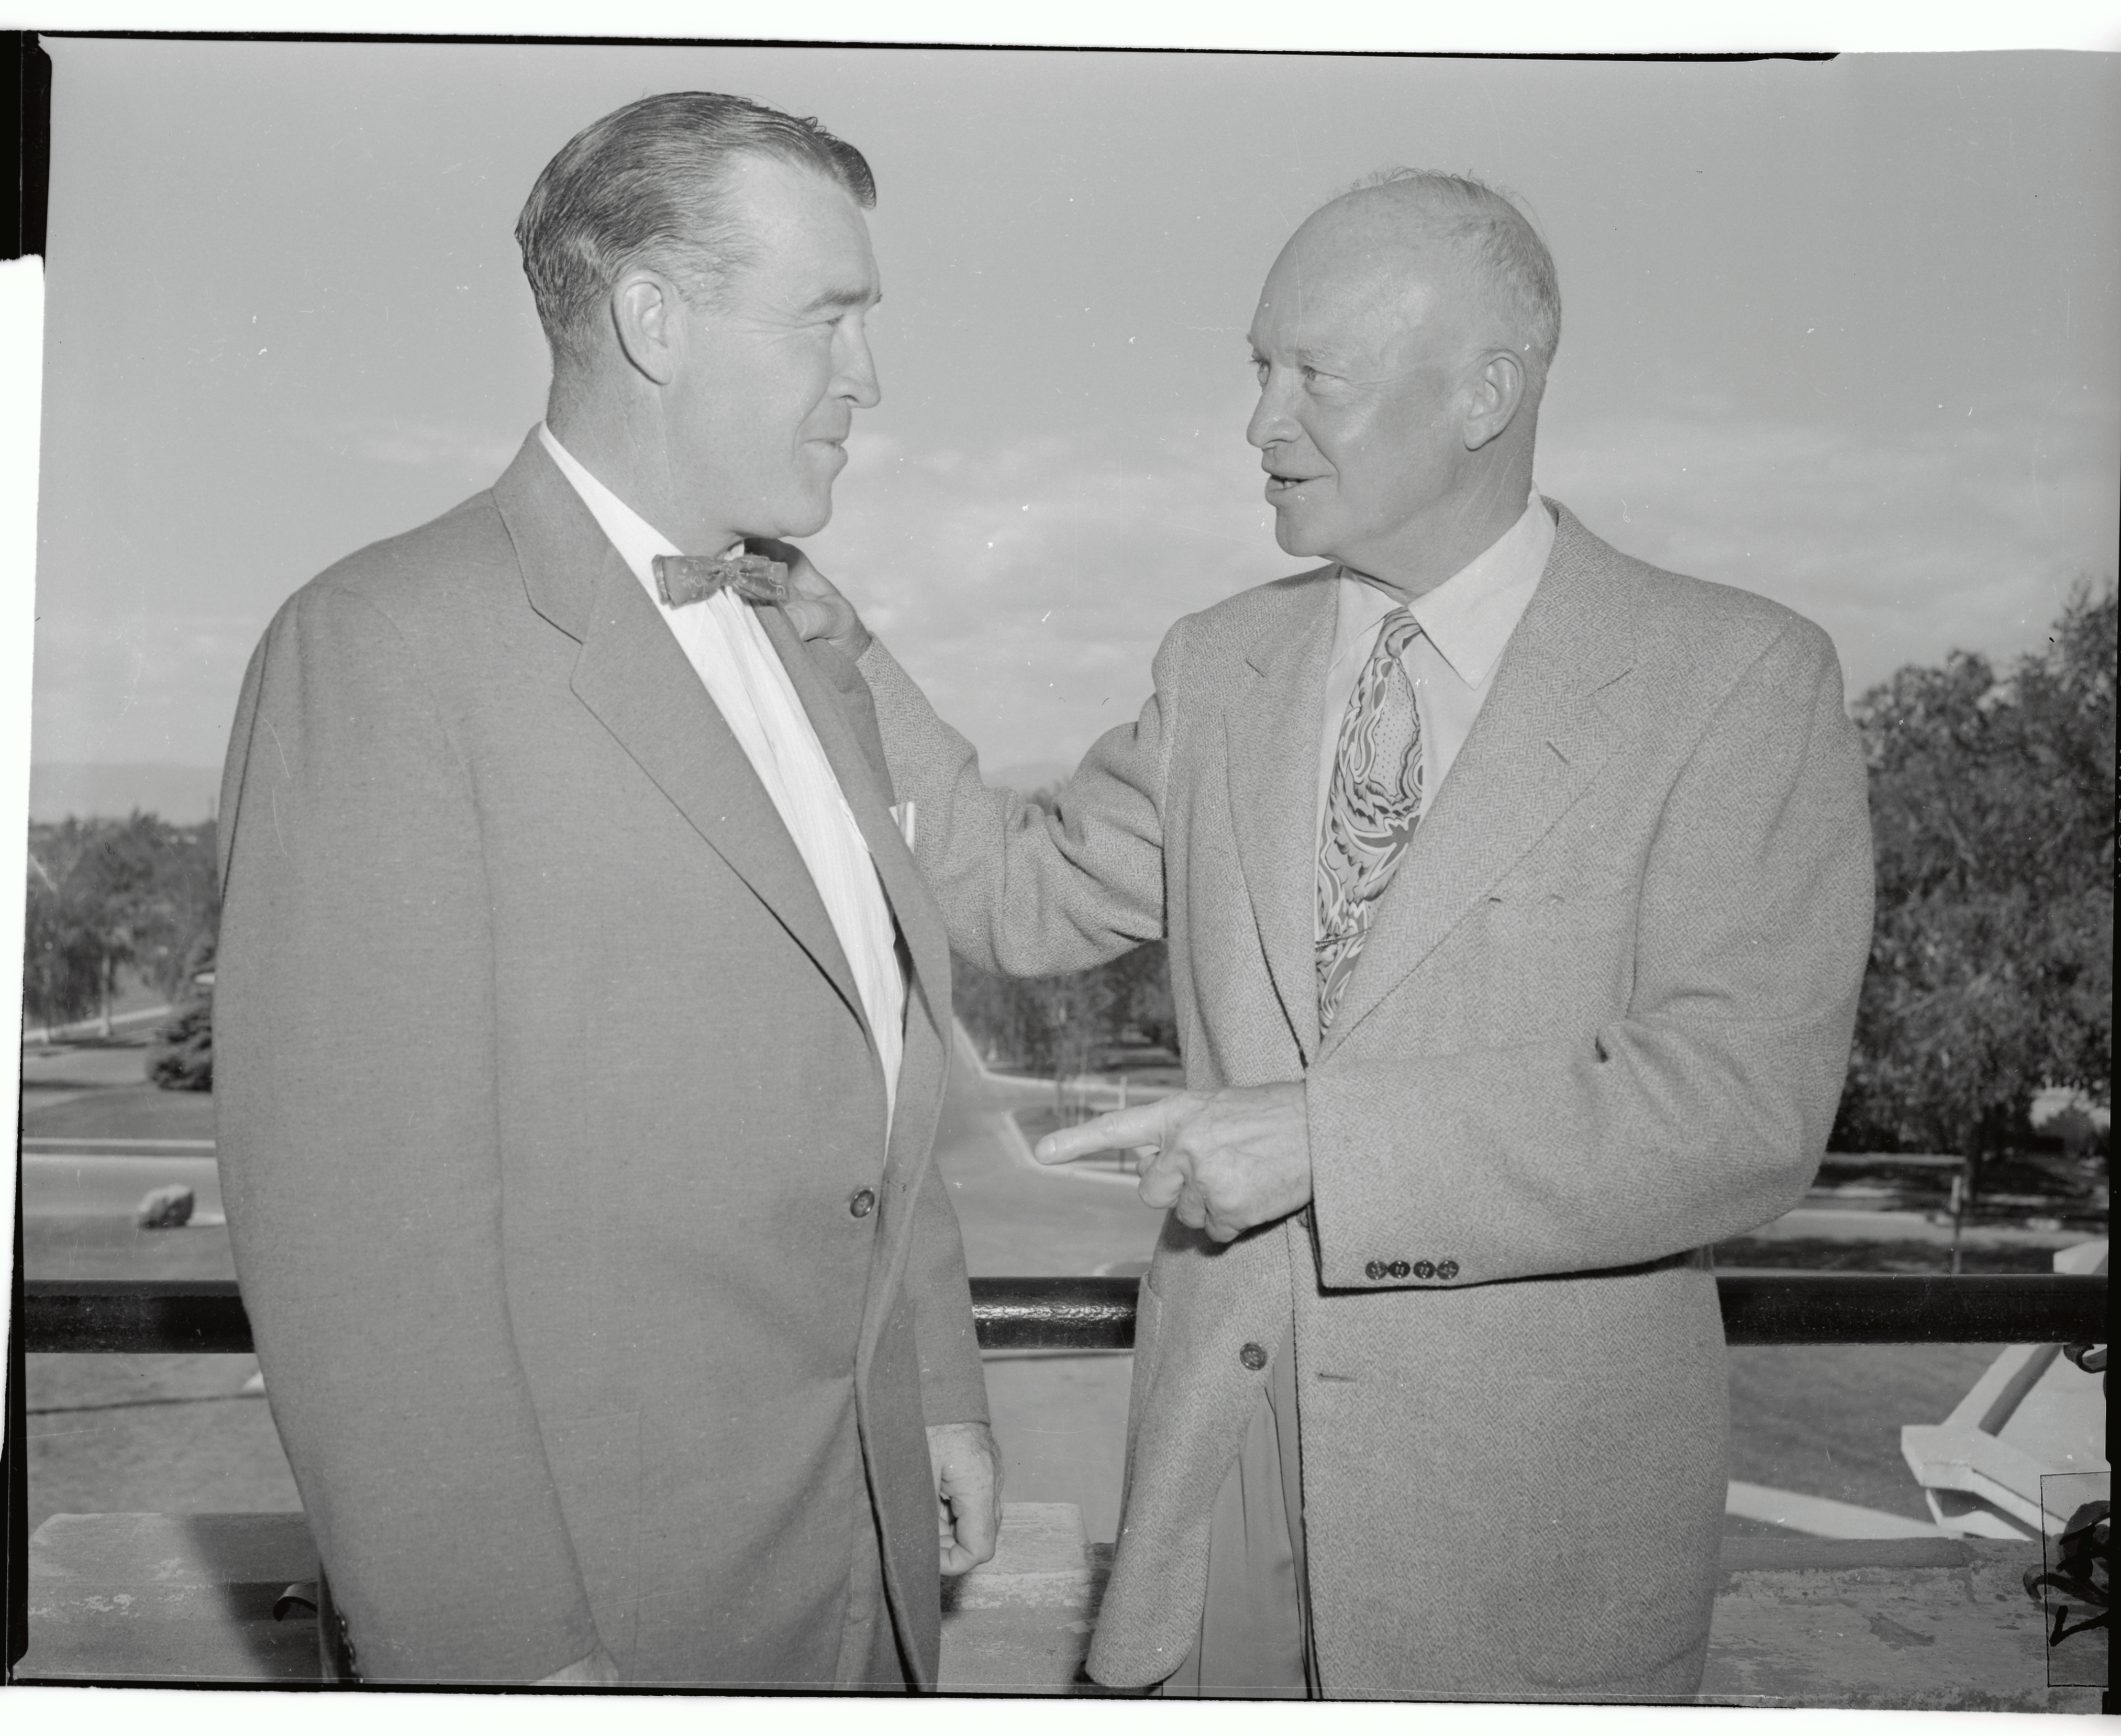 Frank Leahy with Dwight D. Eisenhower